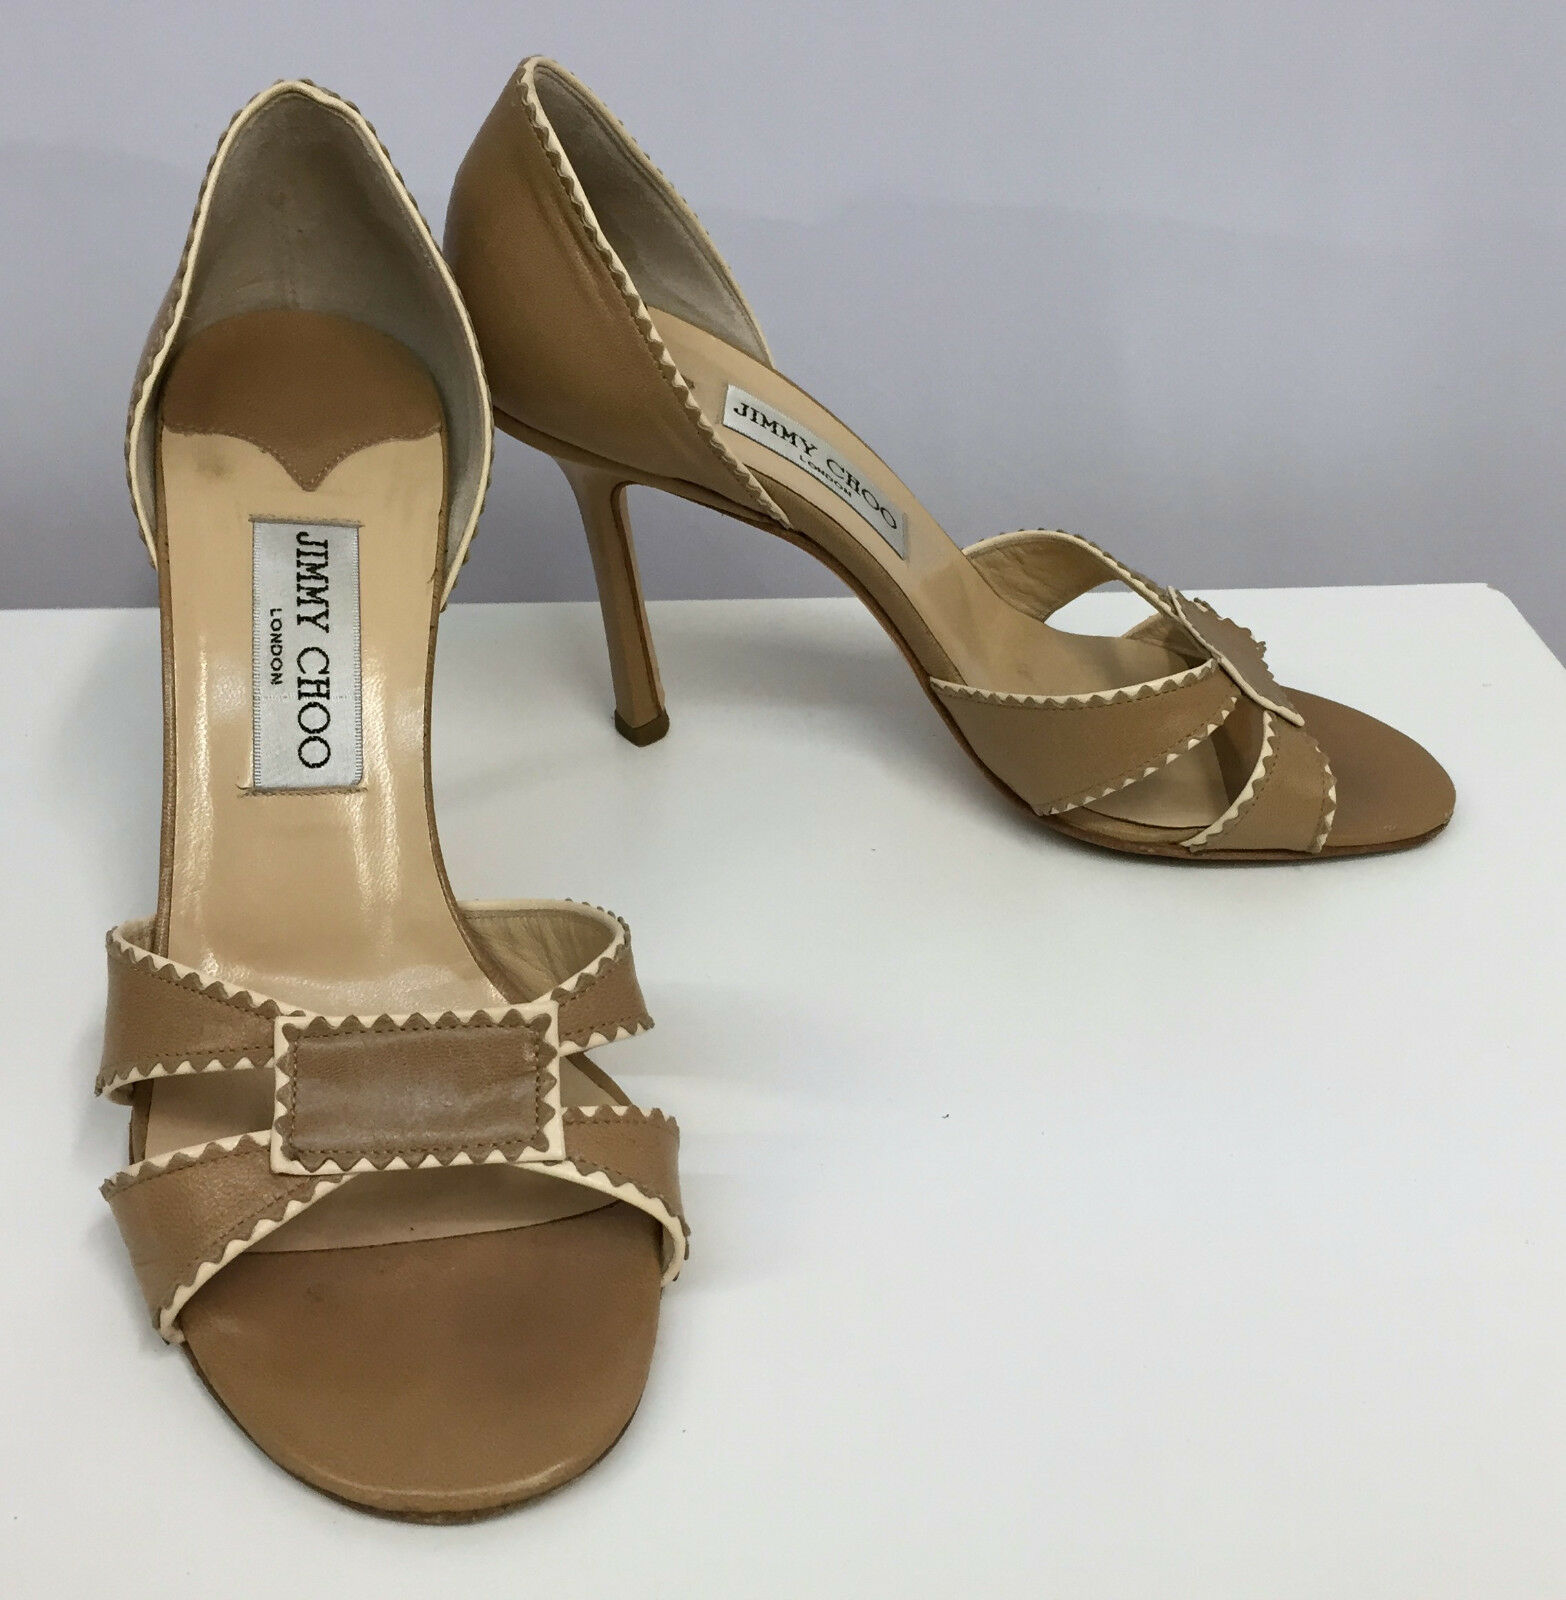 JIMMY CHOO PEEP TOE Schuhe TAN AND BEIGE LEATHER 8 SEXY STYLE 38 FITS 8 LEATHER 1/2 92b403